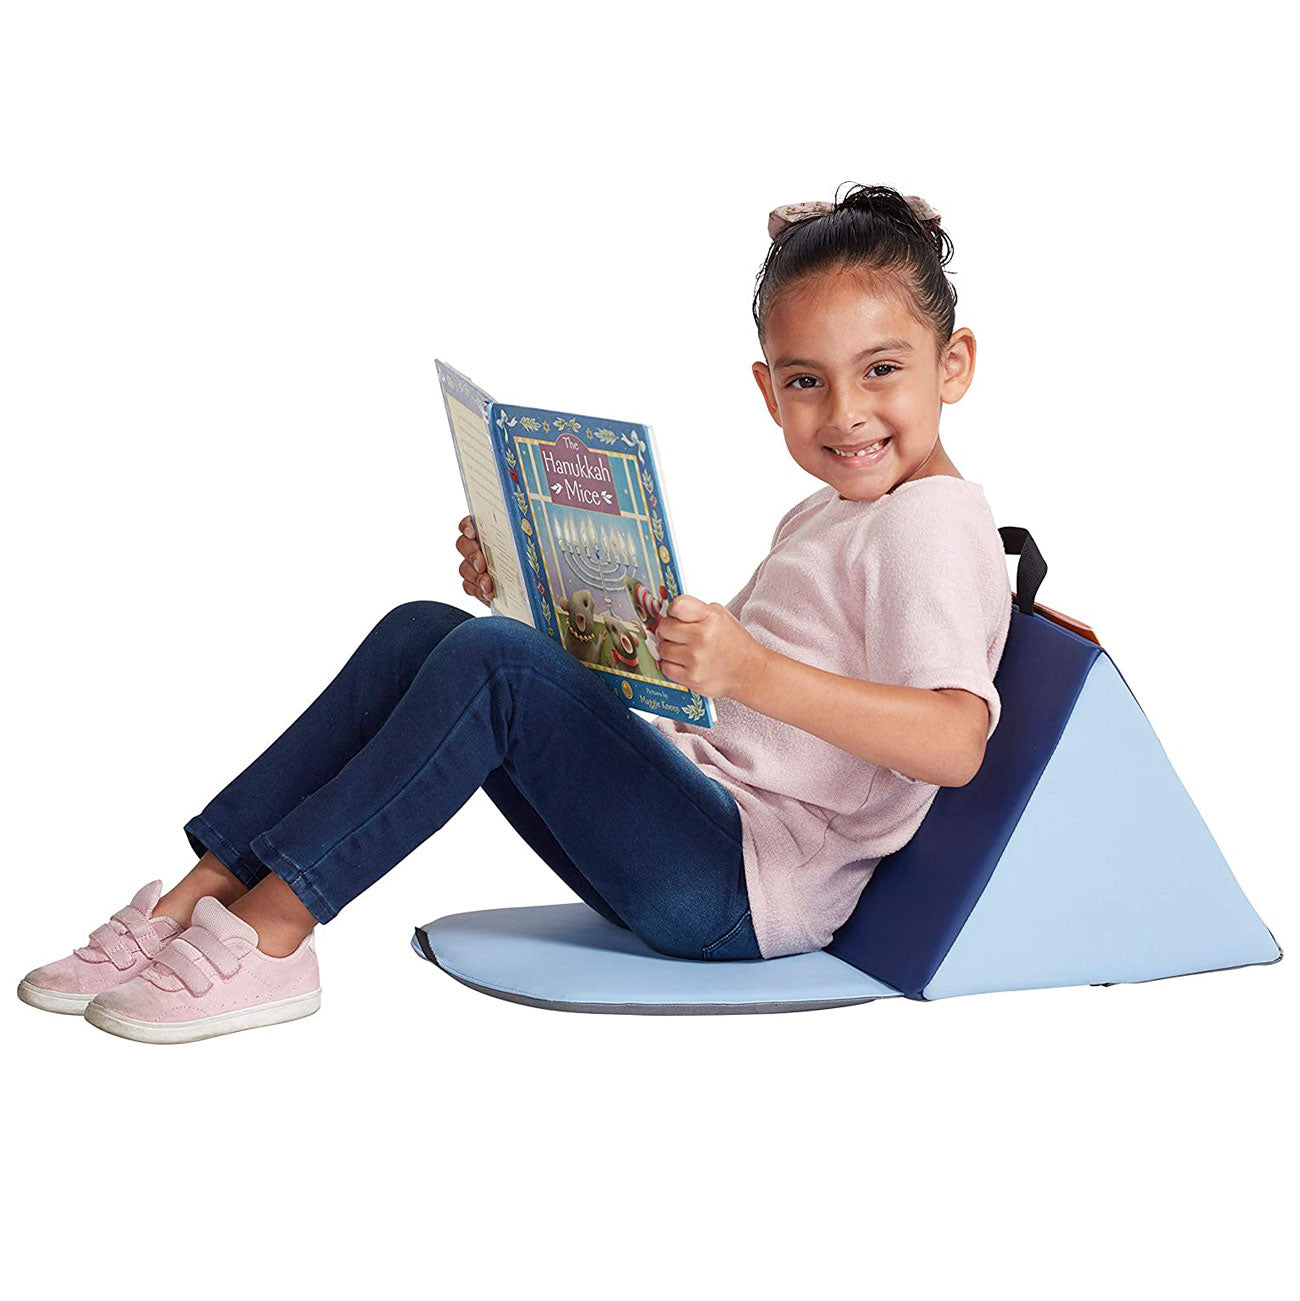 Kids Soft Block Sofa Carrying Reading Seat Cushion - Blue